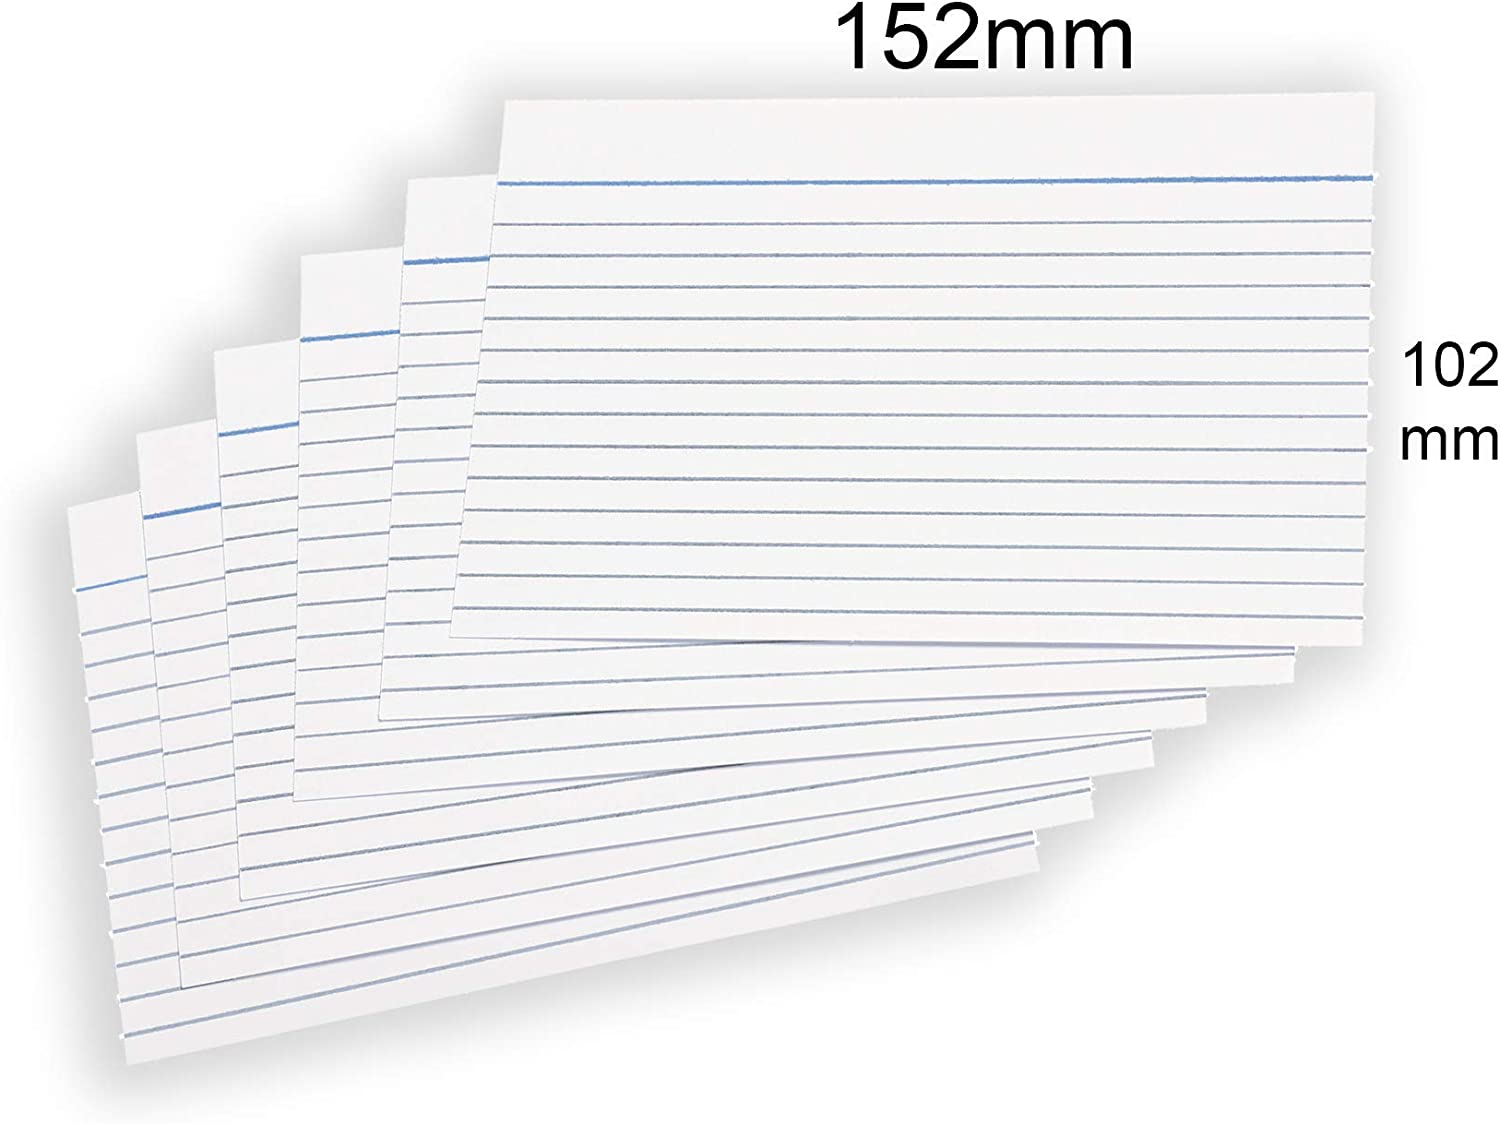 A6 Revision Cards 6x4 White Record Cards FlashCards Ruled 152mm x 102mm Blank Flash Cards Index Cards 6x 4 800 Pack